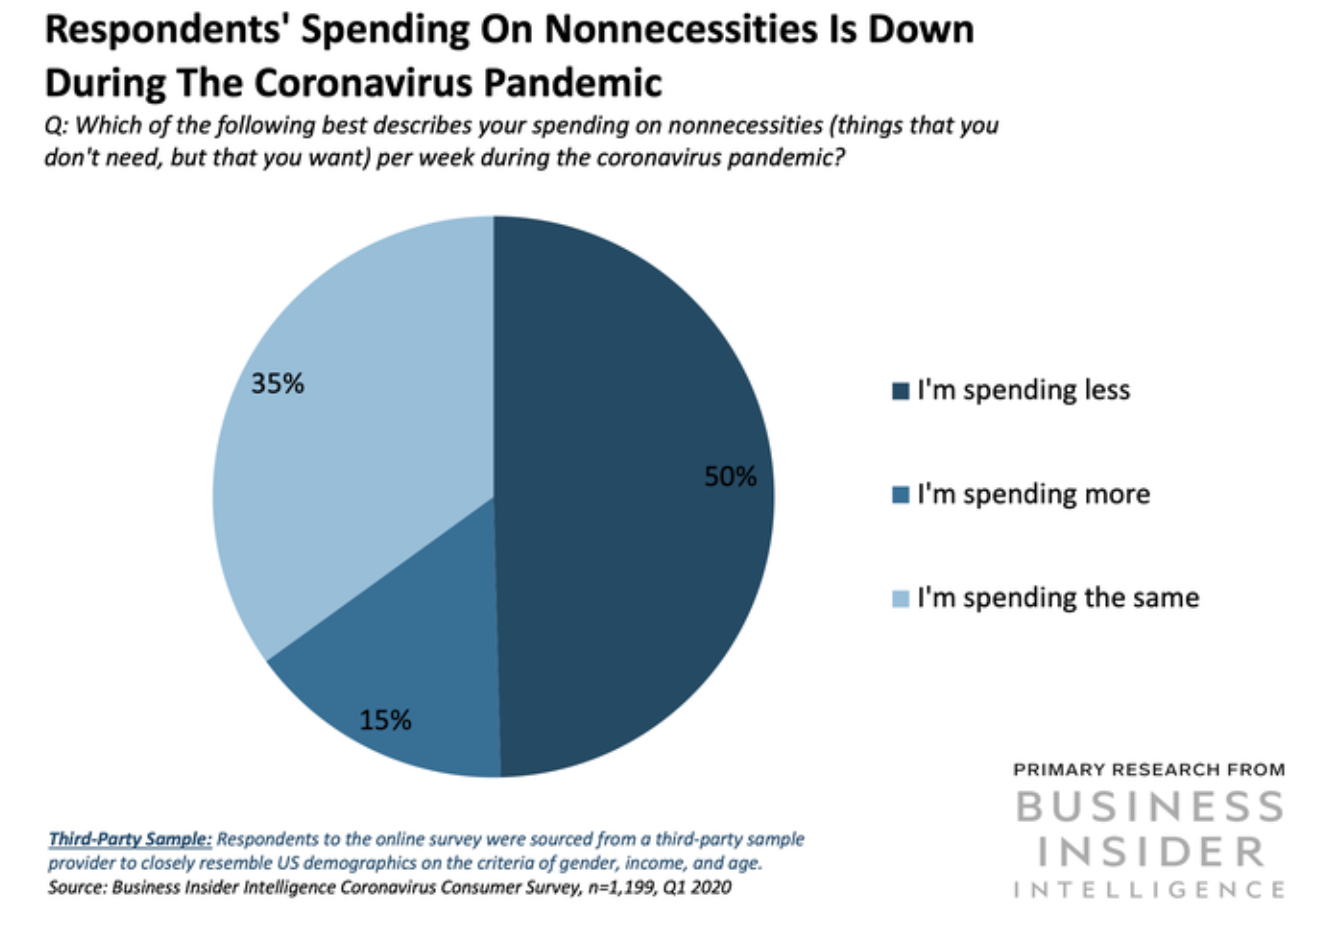 Spending on nonnecessities is down during COVID